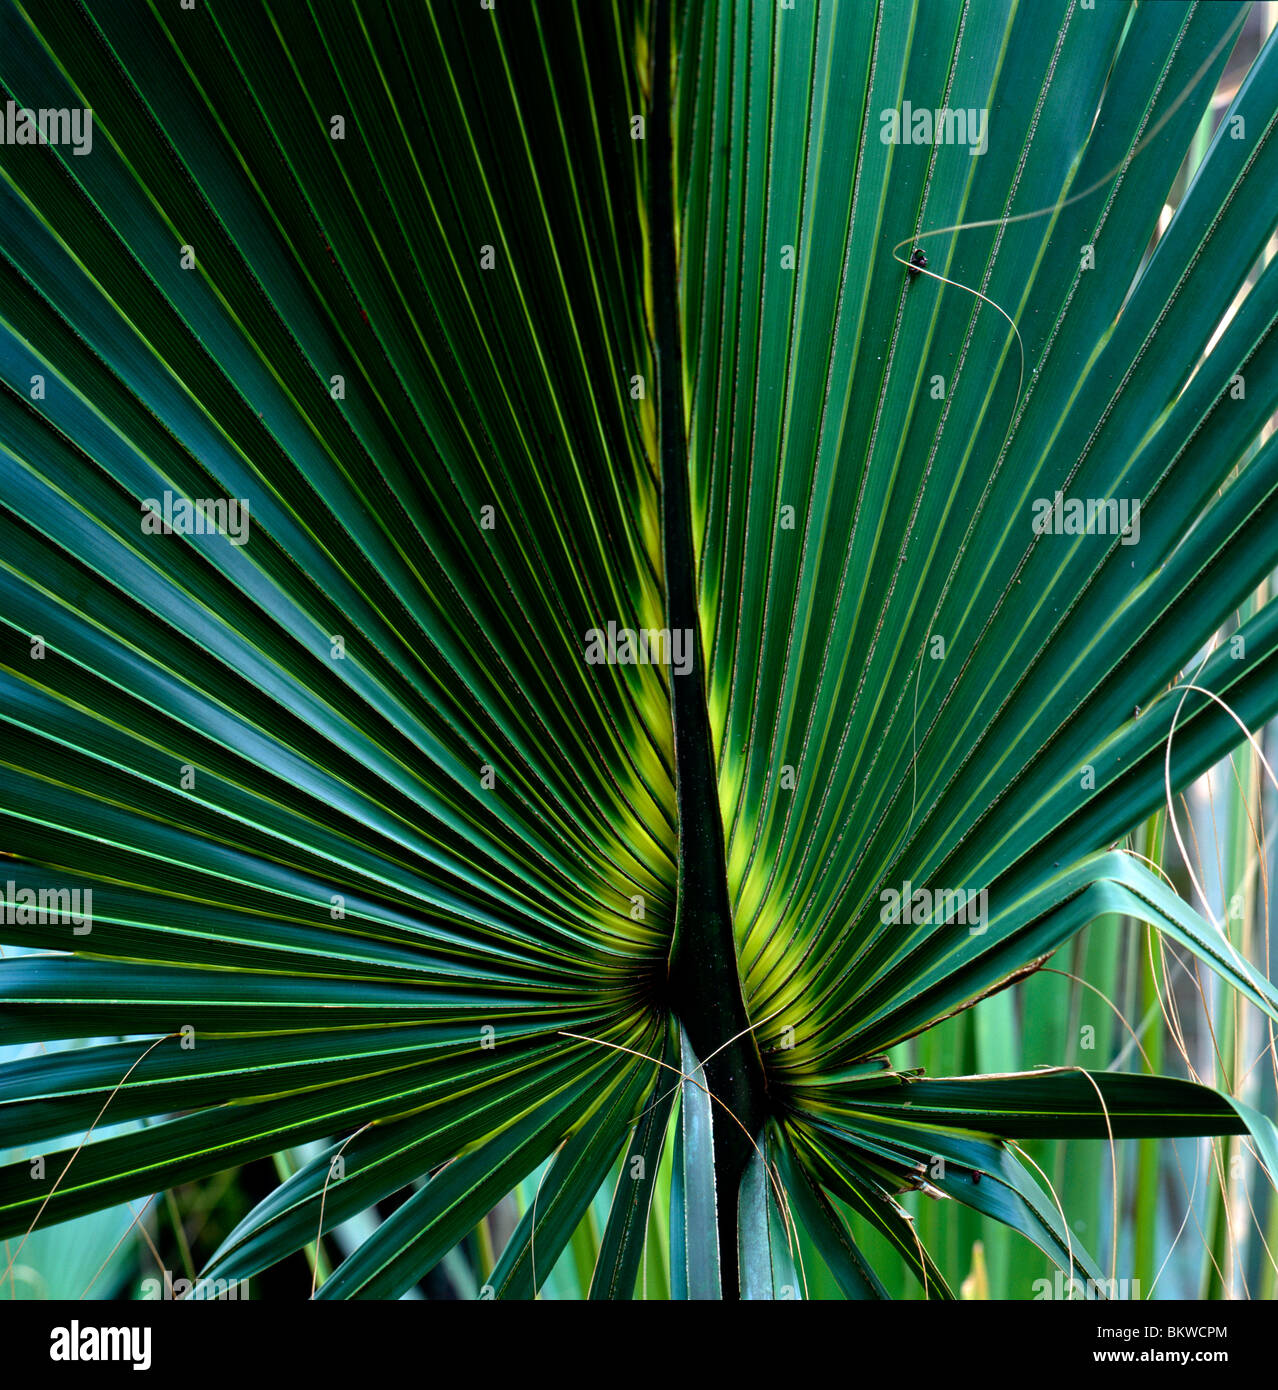 Close-up view of the fronds of a Palmetto tree leaf, Ding Darling National Wildlife Refuge, Sanibel Island, Florida, - Stock Image